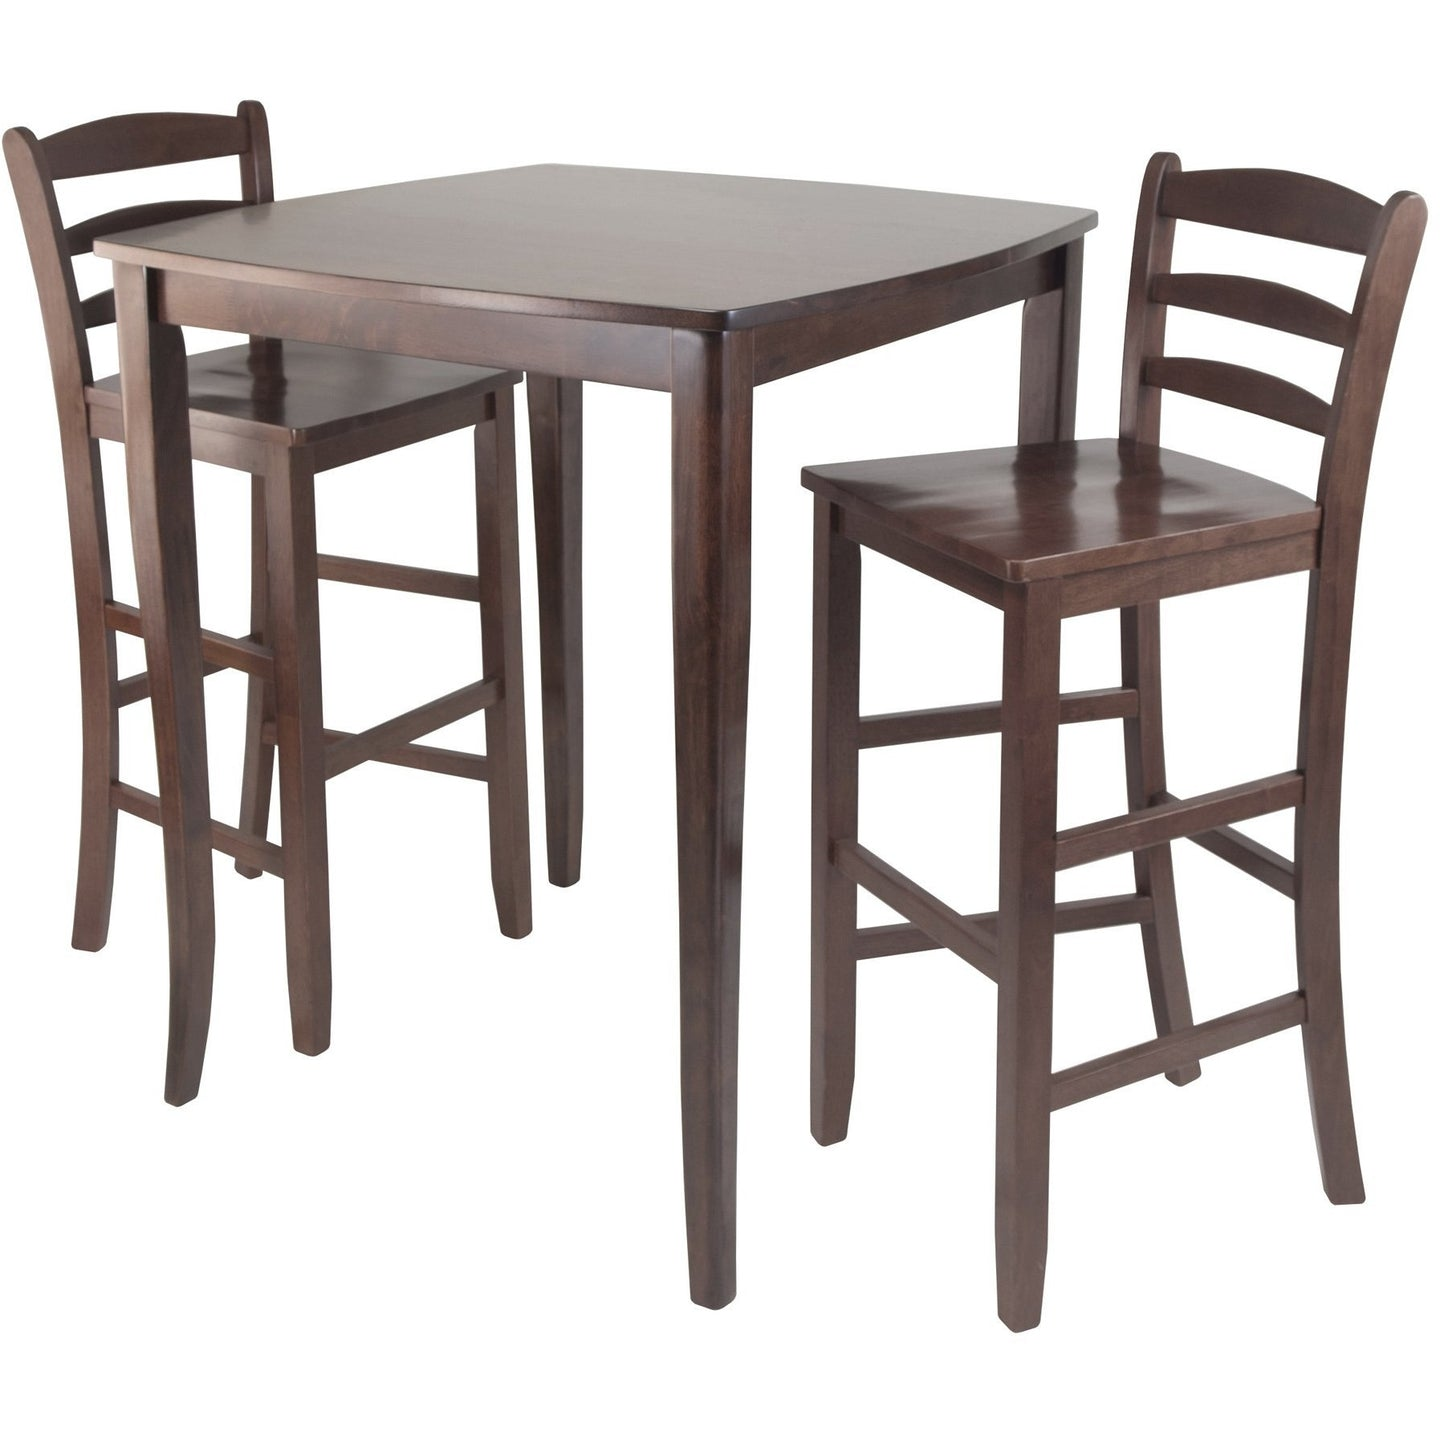 INGLEWOOD 3-Pc High Pub Table Set with Benjamin Barstools Walnut - barsforhomes.com